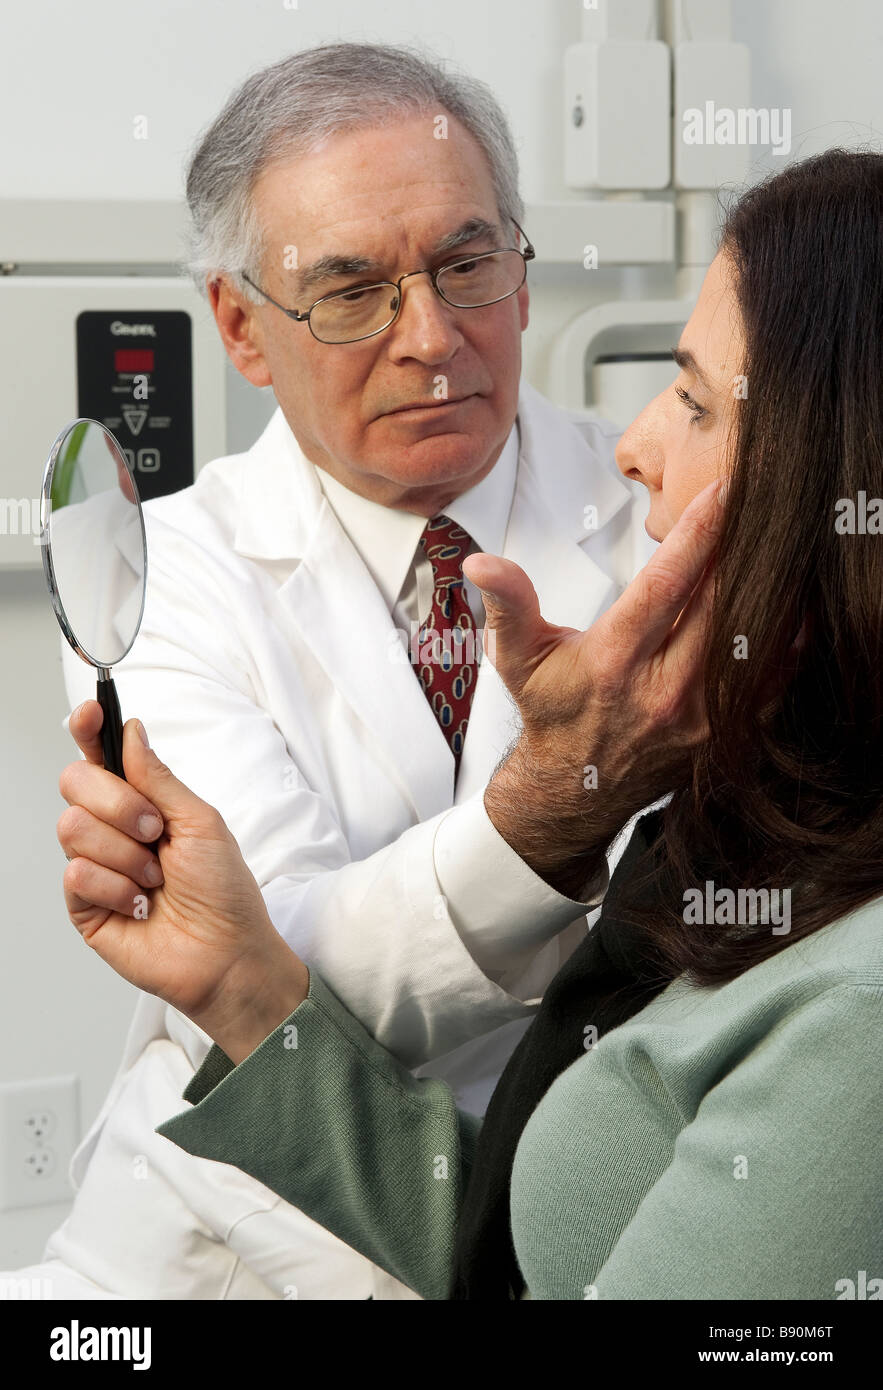 Cosmetic surgery consult with patient - Stock Image